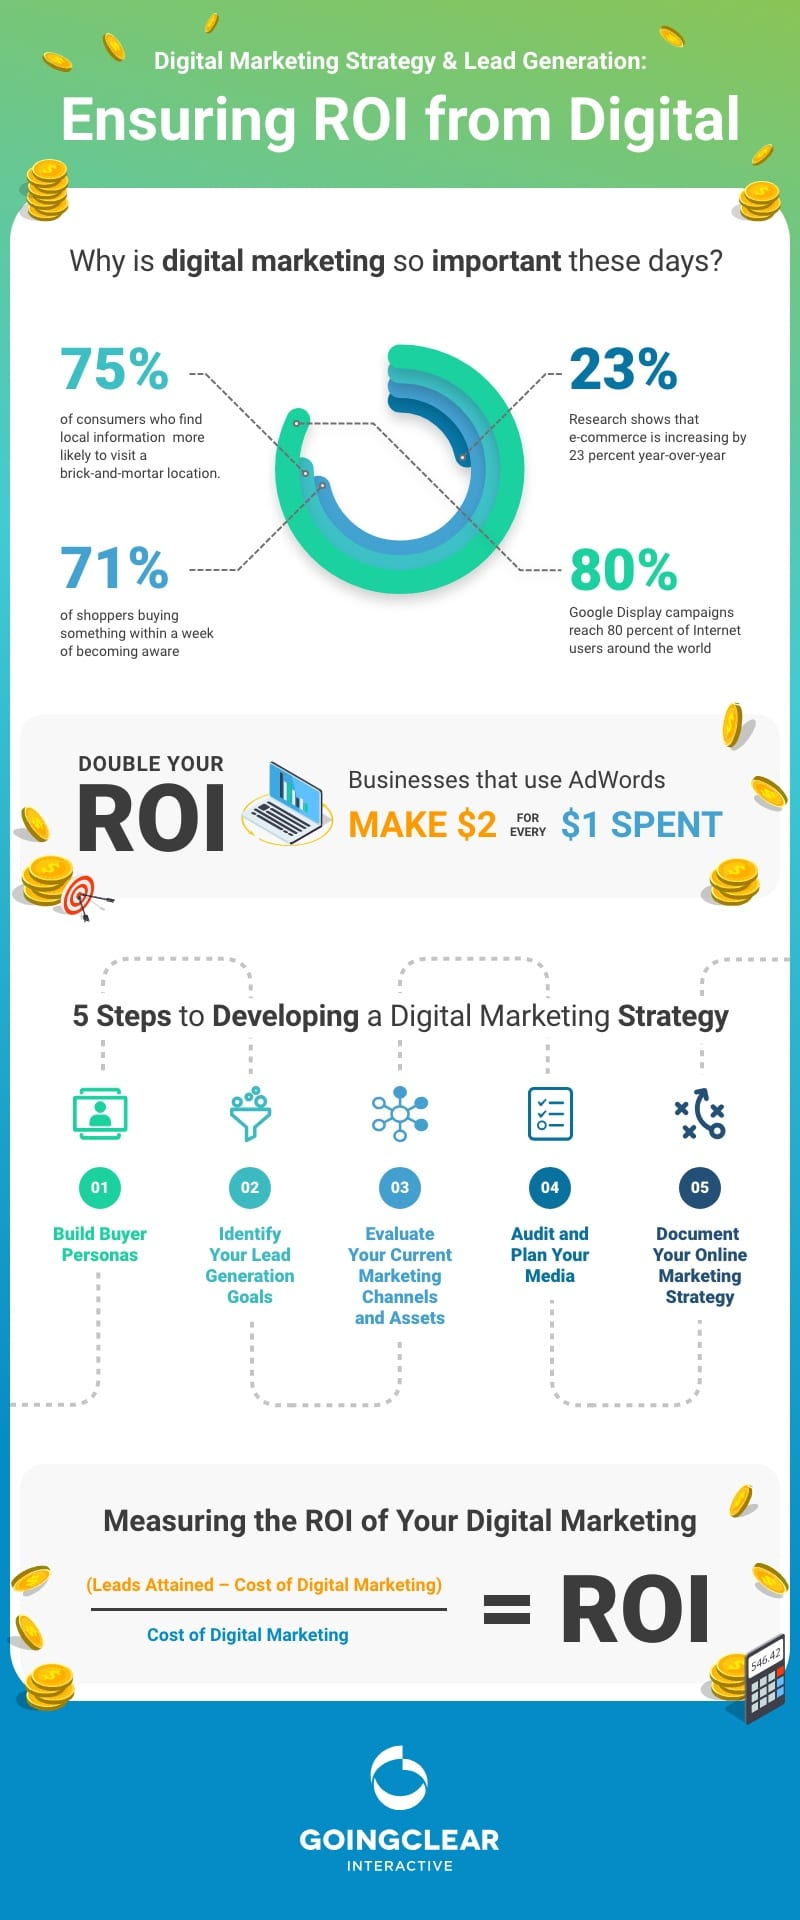 Ensure ROI from Digital Marketing